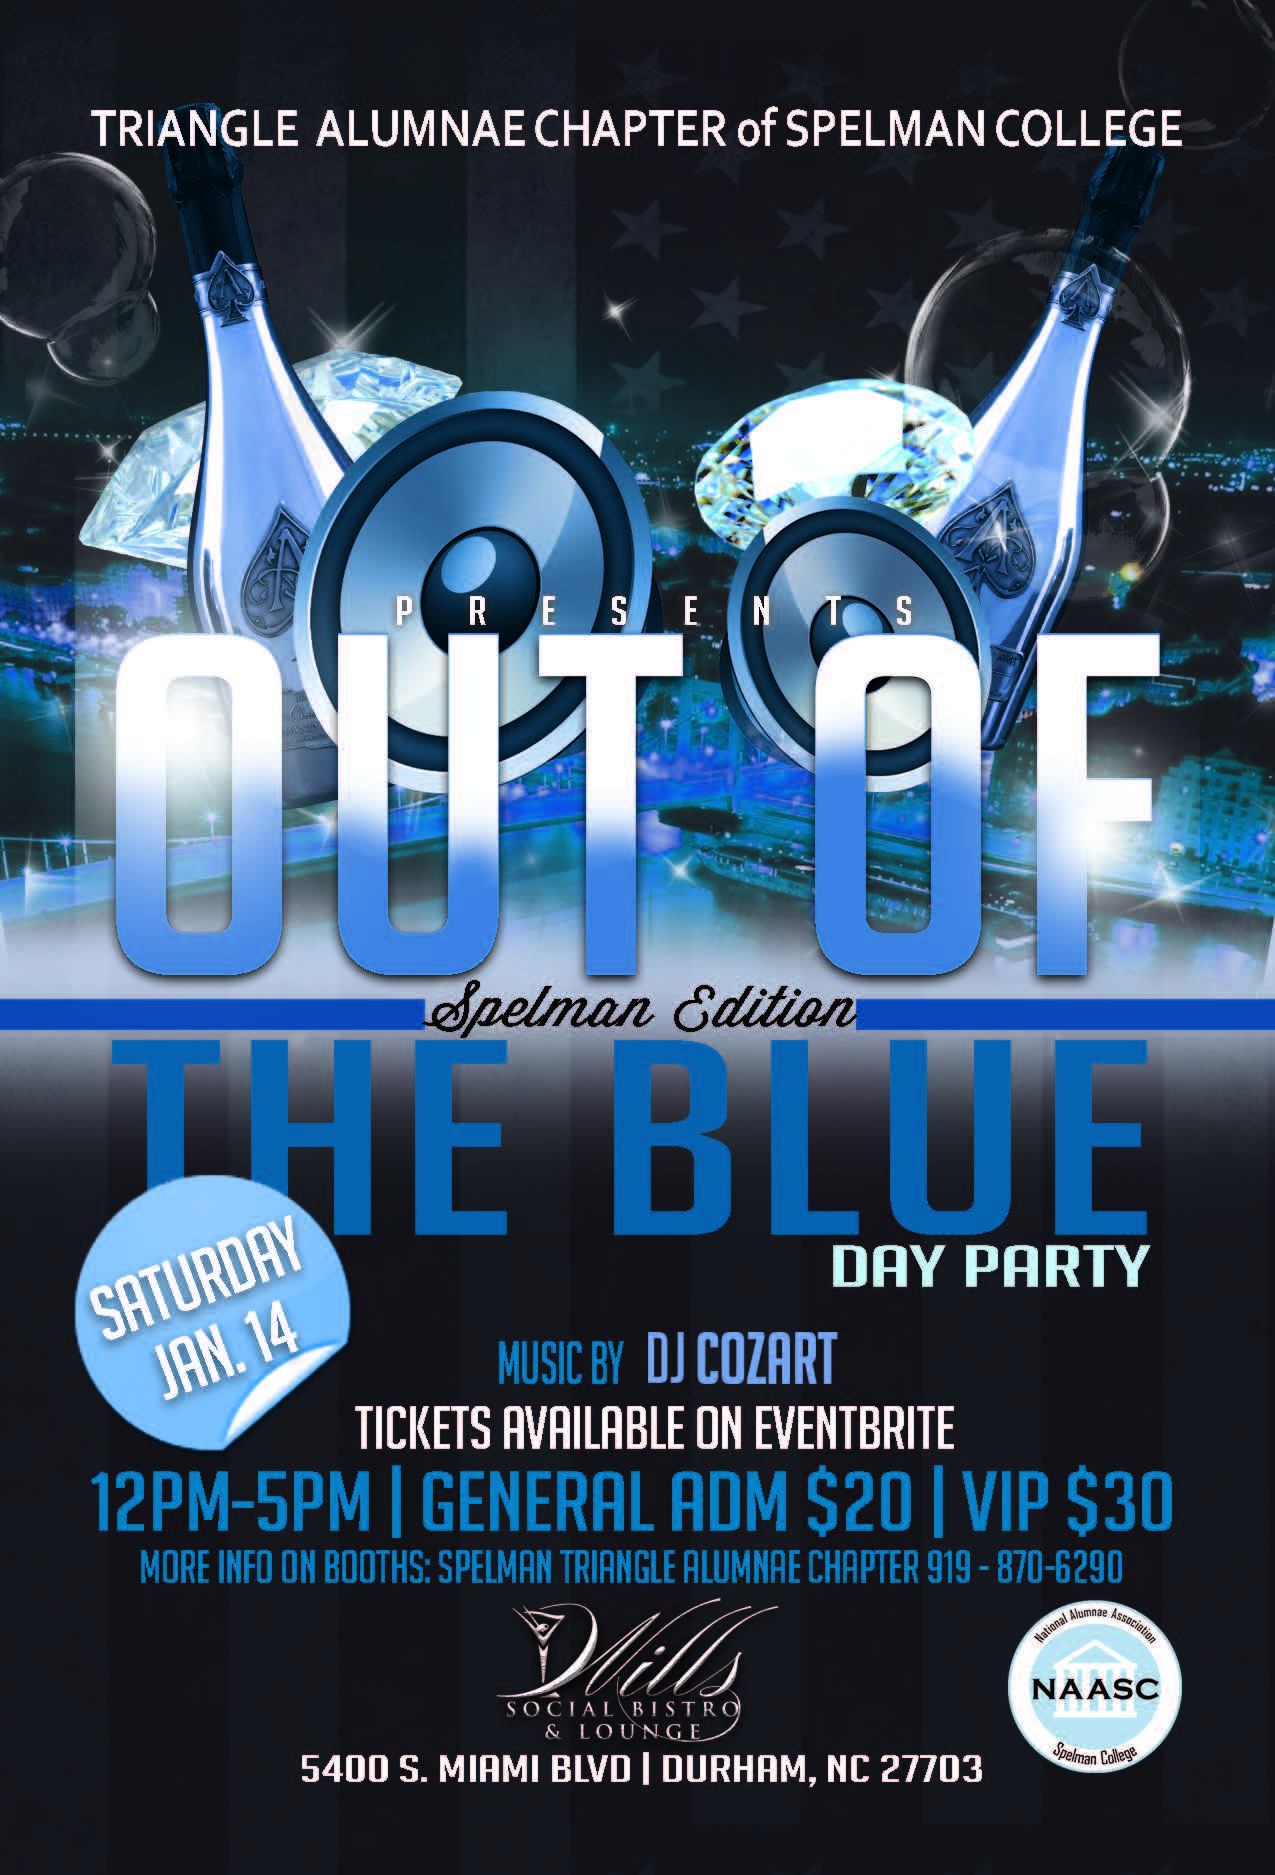 Out of the Blue Flyer, 12-5 pm